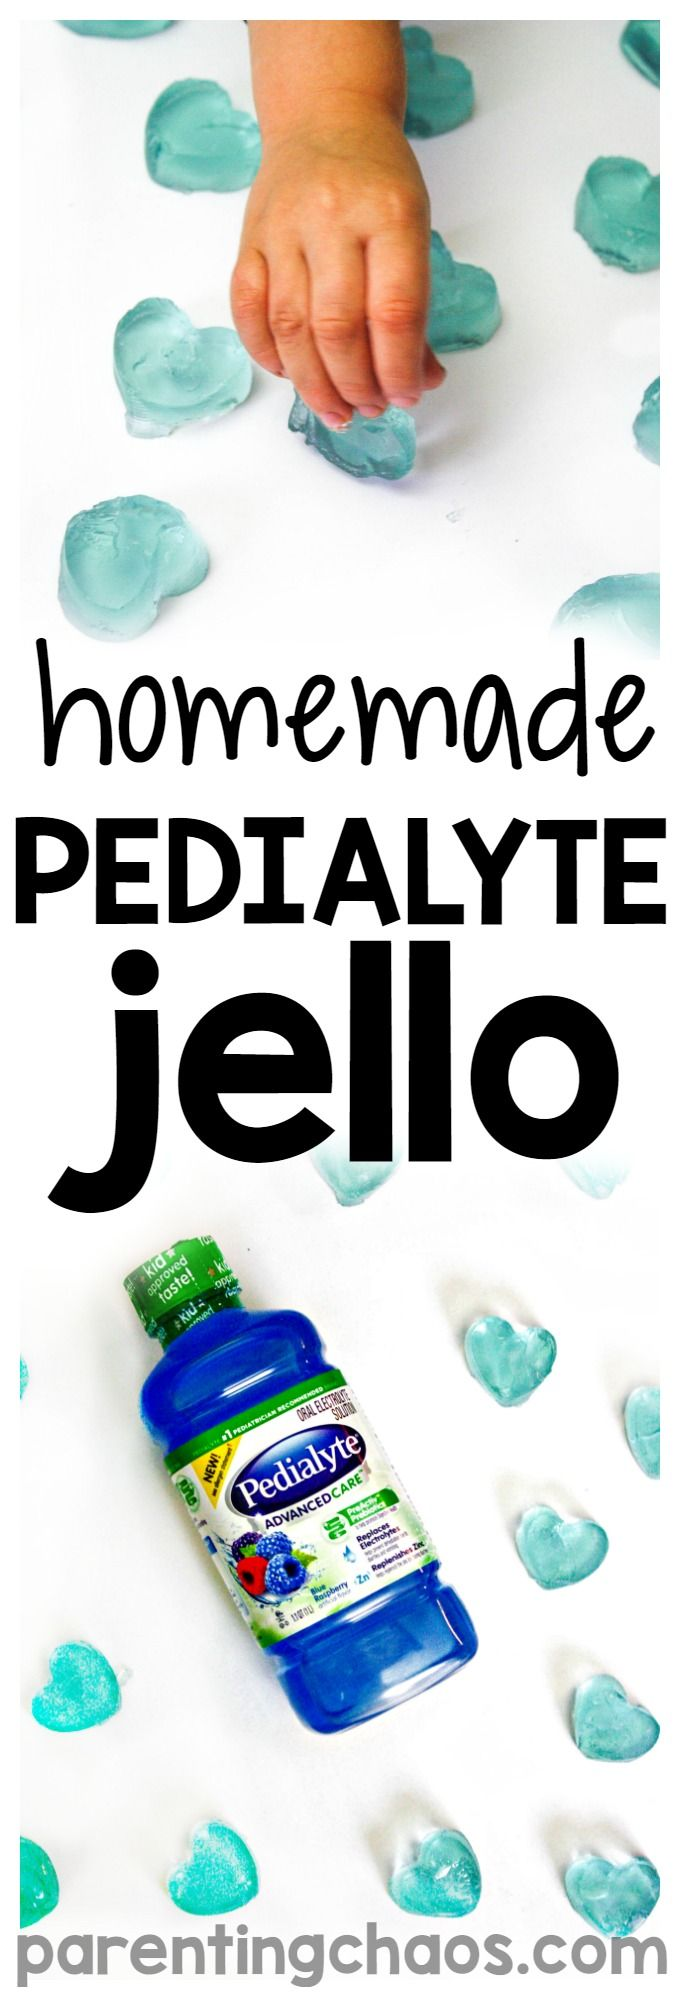 It's that time of year again. If you are hearing the sniffles starting to sneak up in your home this Homemade Pedialyte Jello is a great recipe to keep on hand to help your family stay hydrated. #goodbyeflu #seethelyte #ad